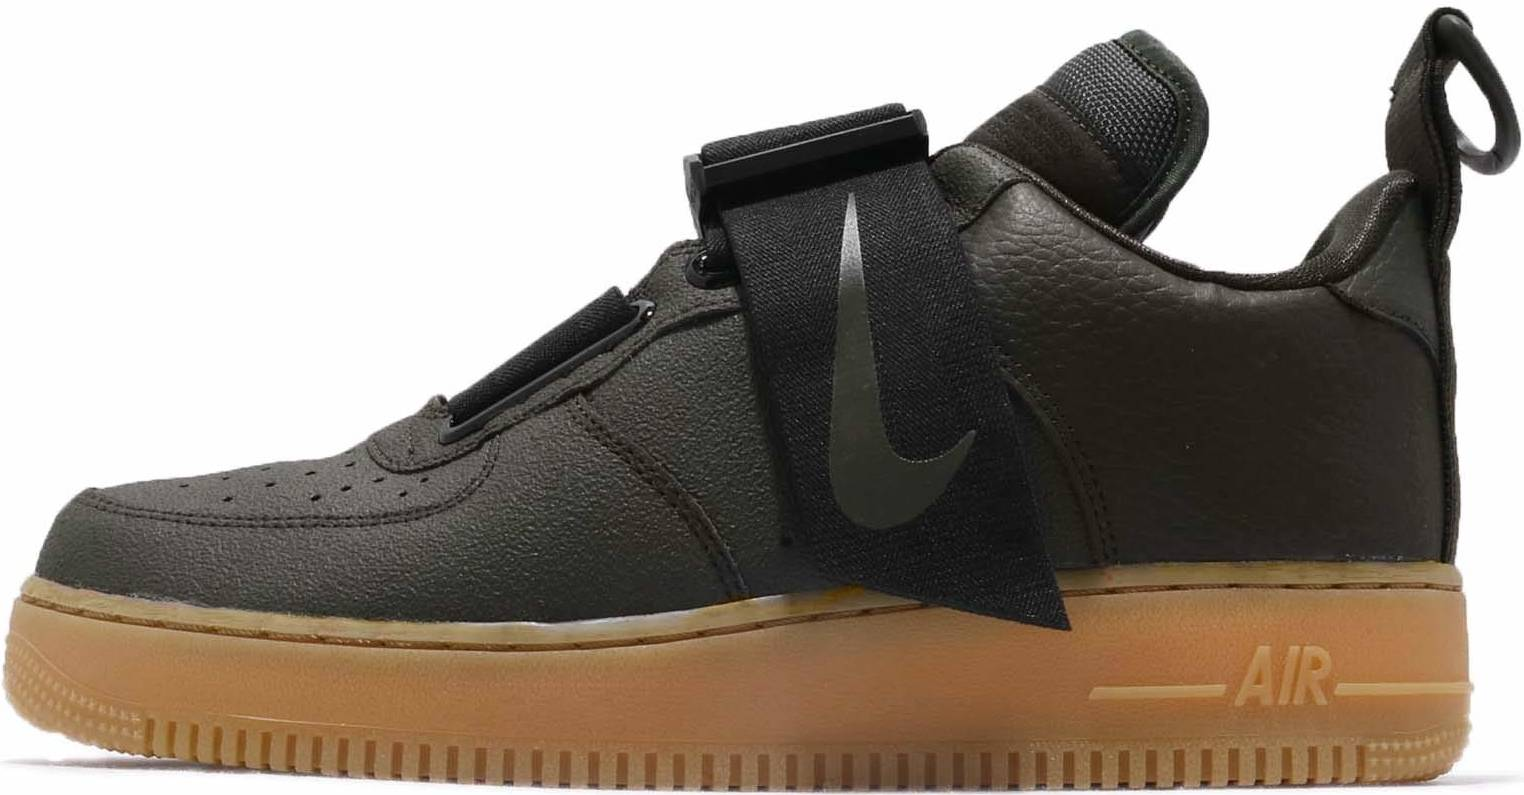 Save 11% on Nike Air Force 1 Sneakers